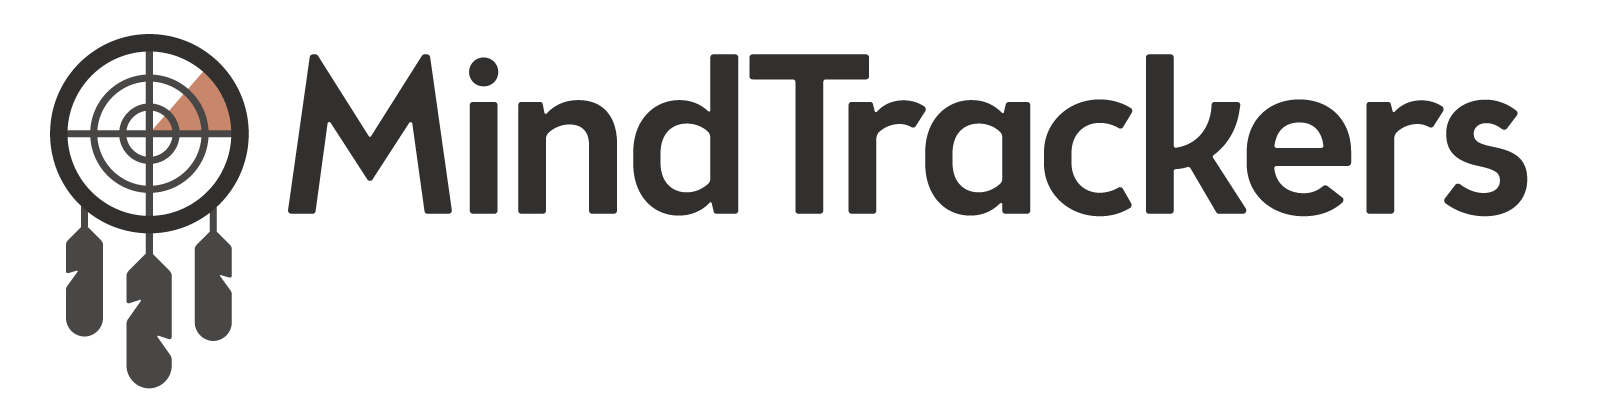 MindTrackers-final-logo